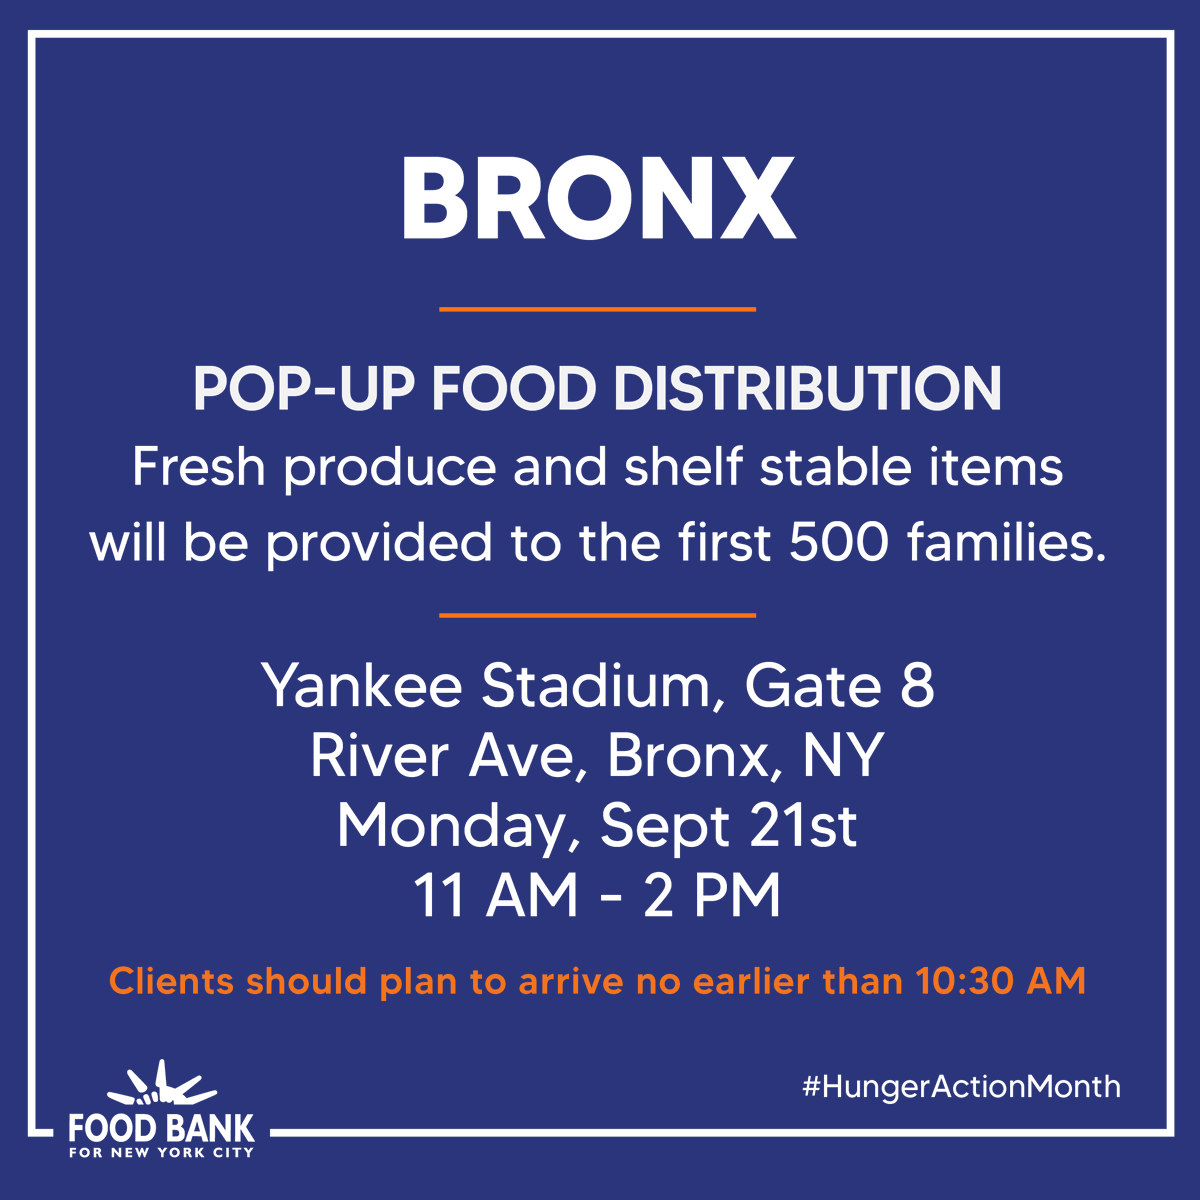 Food Bank For New York City & Yankee Stadium Team Up For Pop-Up Food Pantry